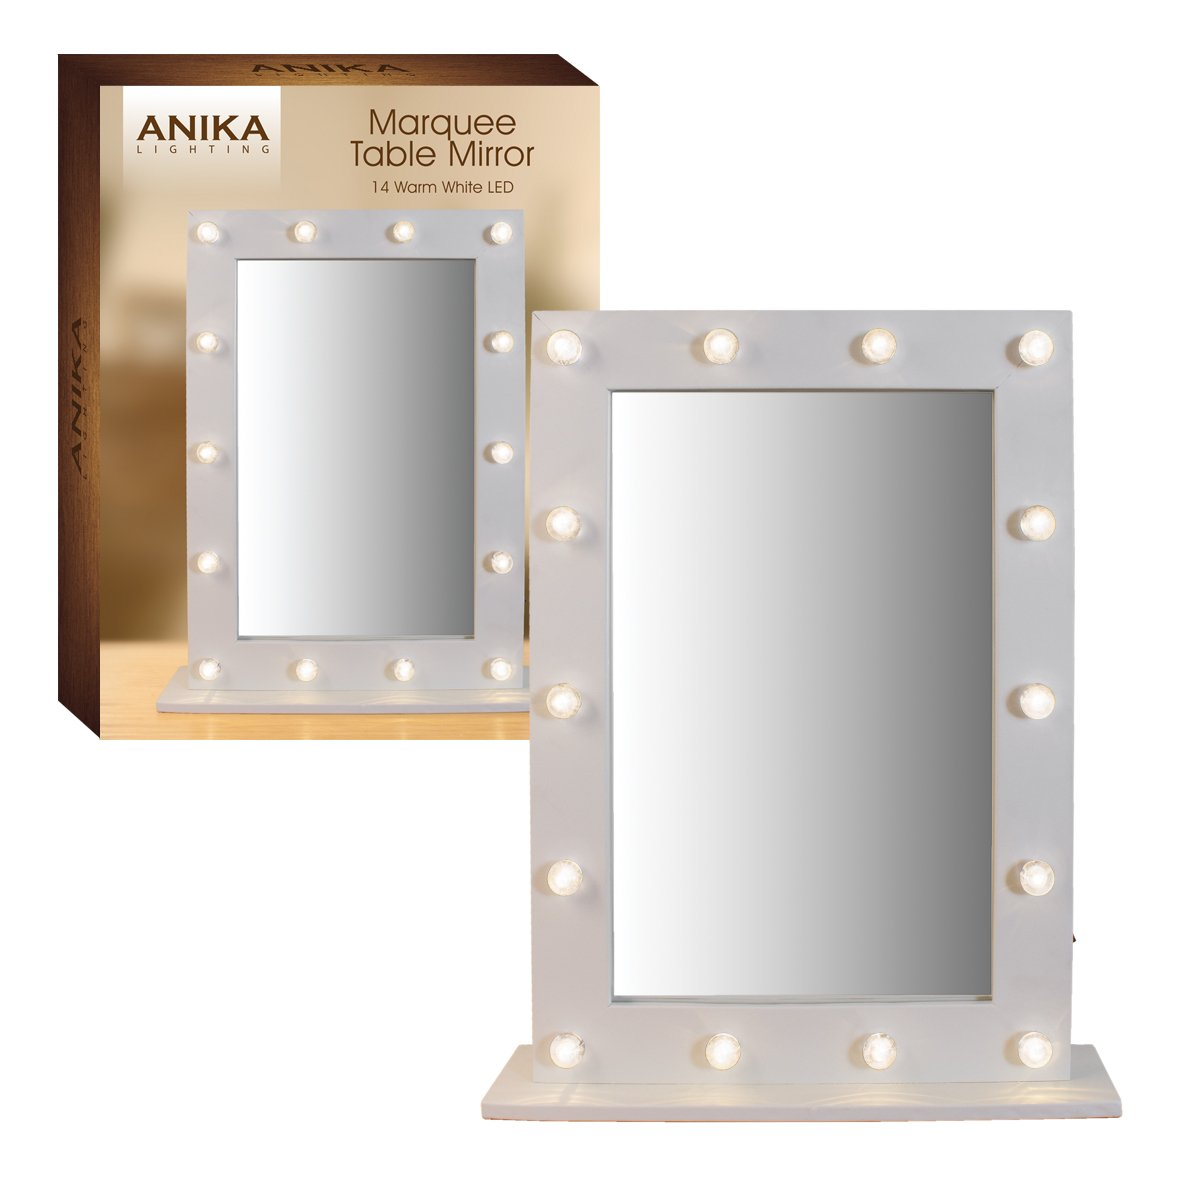 Anika Battery Operated Free Standing LED Marquee Mirror, Warm White Benross 62100